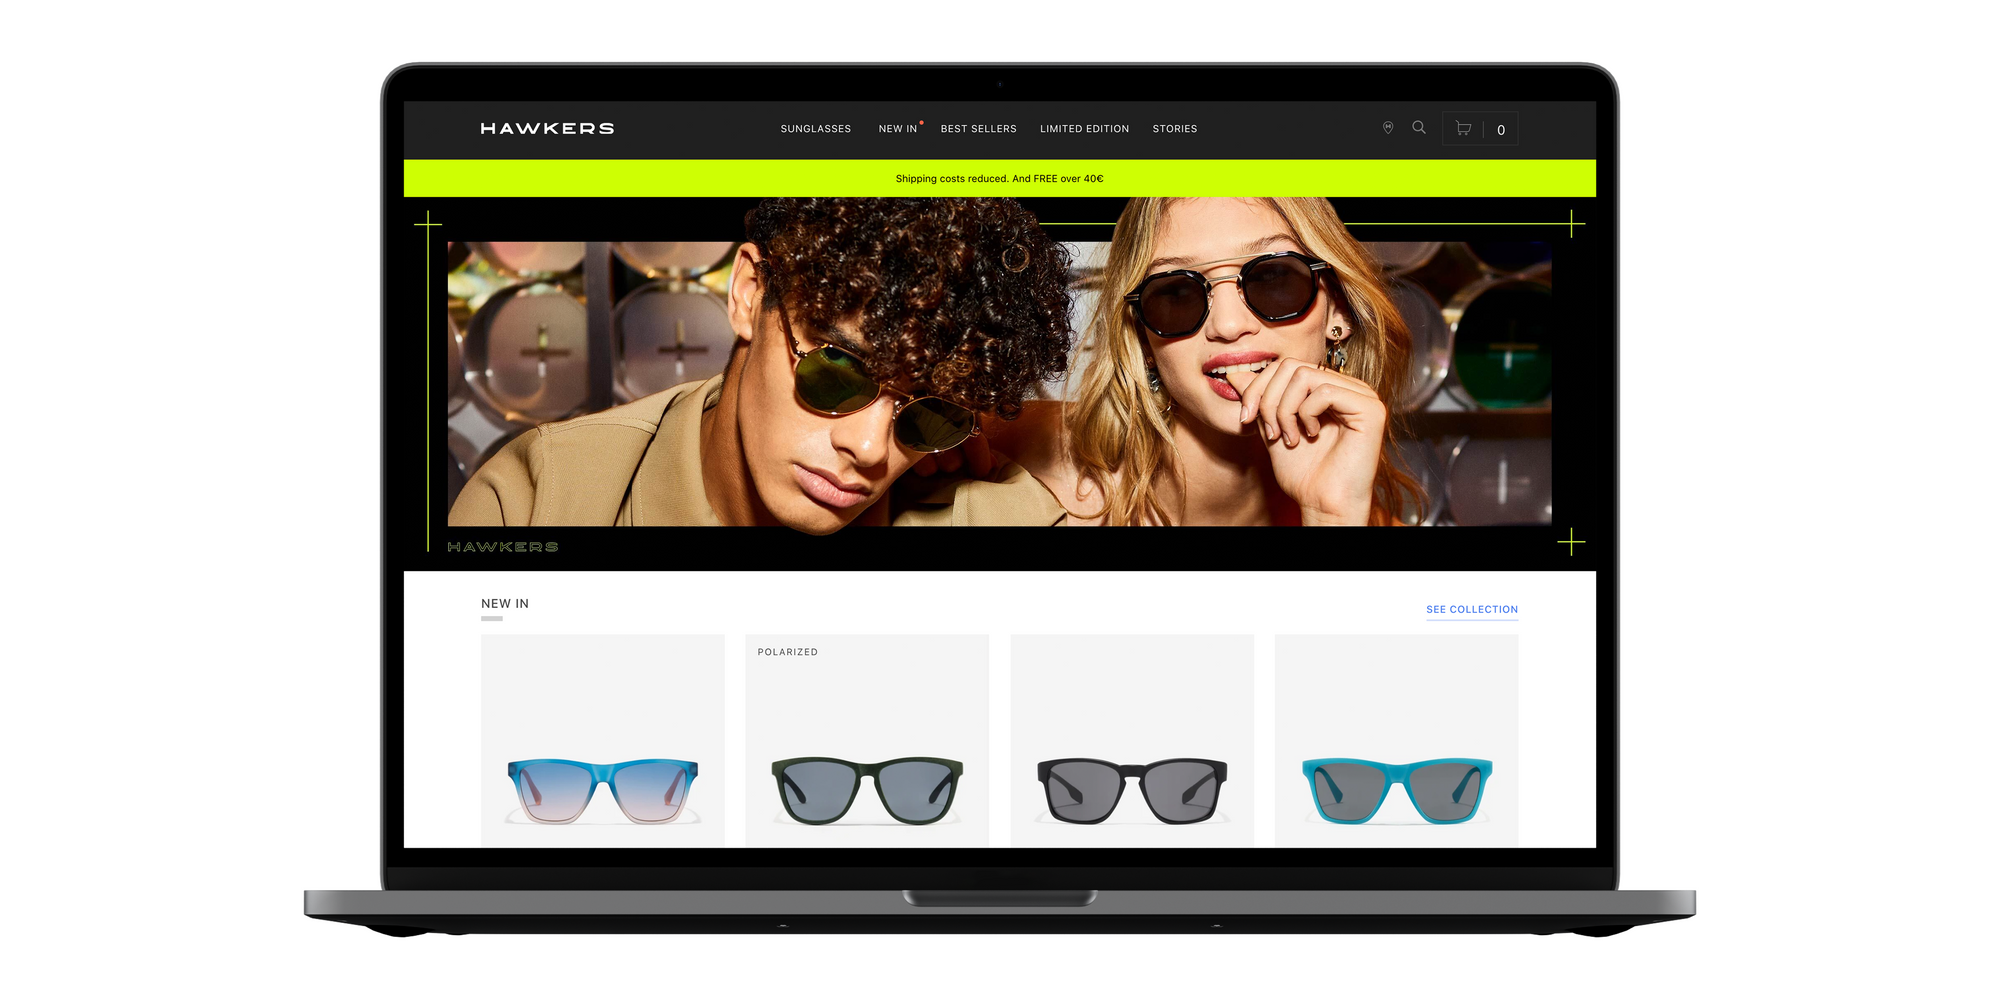 product design and brand for eCommerce